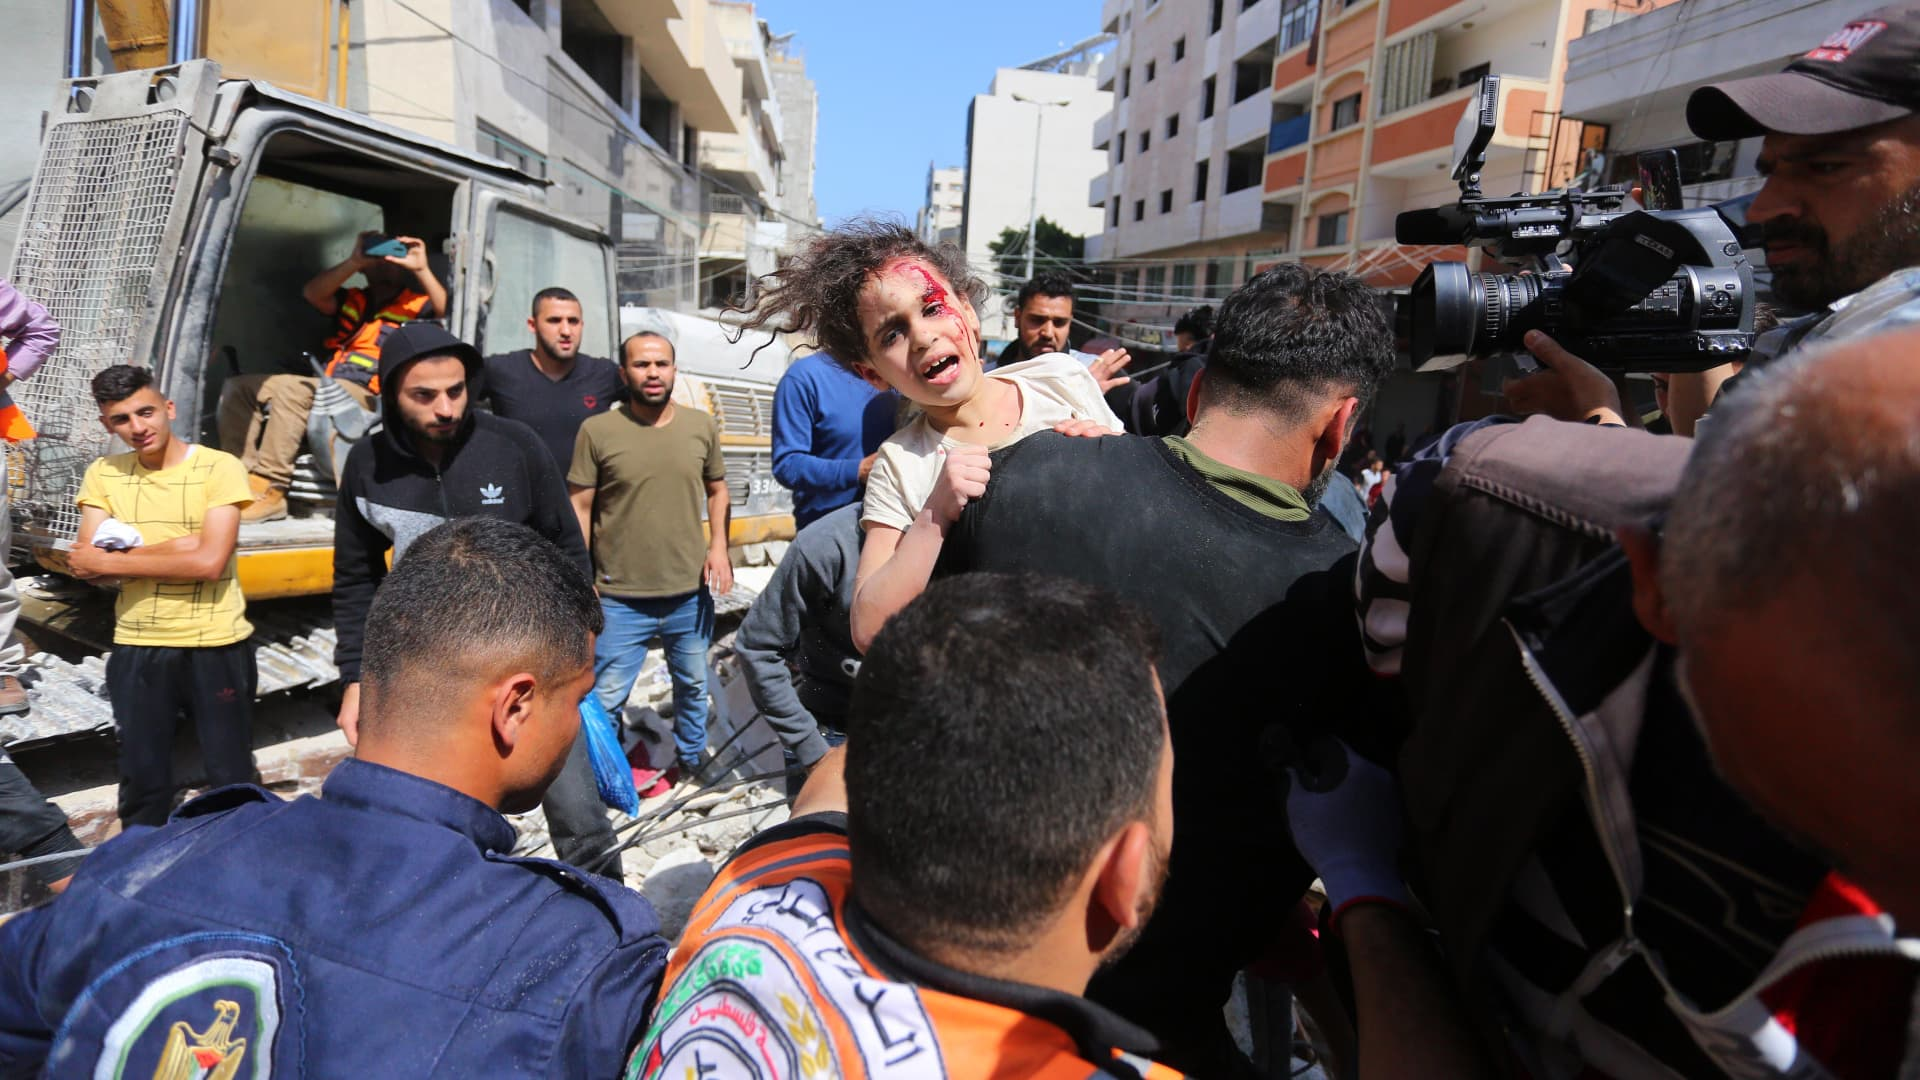 People rescue a wounded child from a debris as search and rescue works continue at a debris of a building after airstrikes by Israeli army hit buildings in al-Rimal neighborhood of Gaza City, Gaza on May 16, 2021.